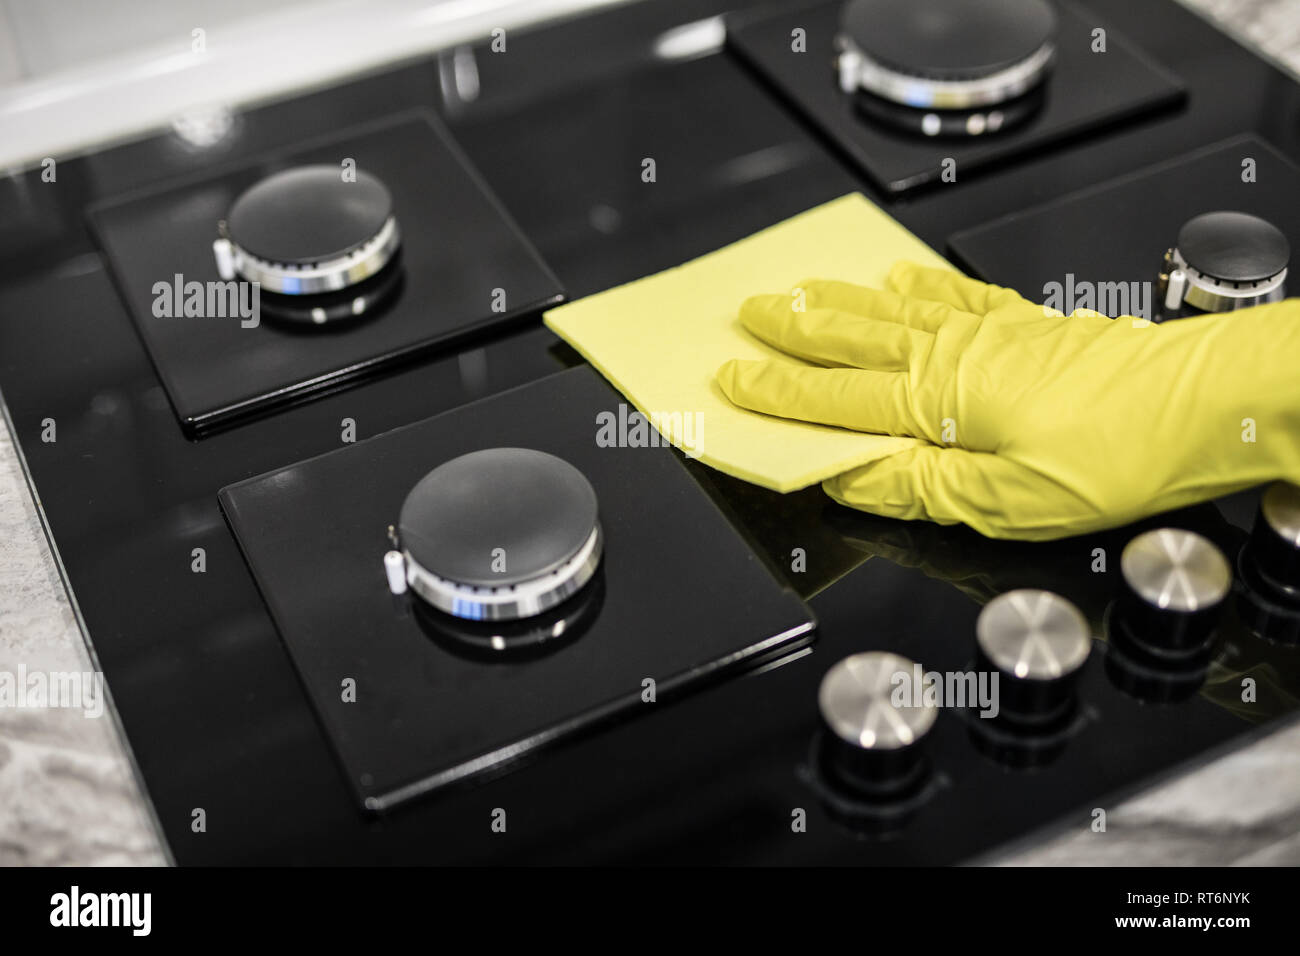 Woman hand with a yellow microfiber cloth rubs a glass ceramic stove in the kitchen. - Stock Image